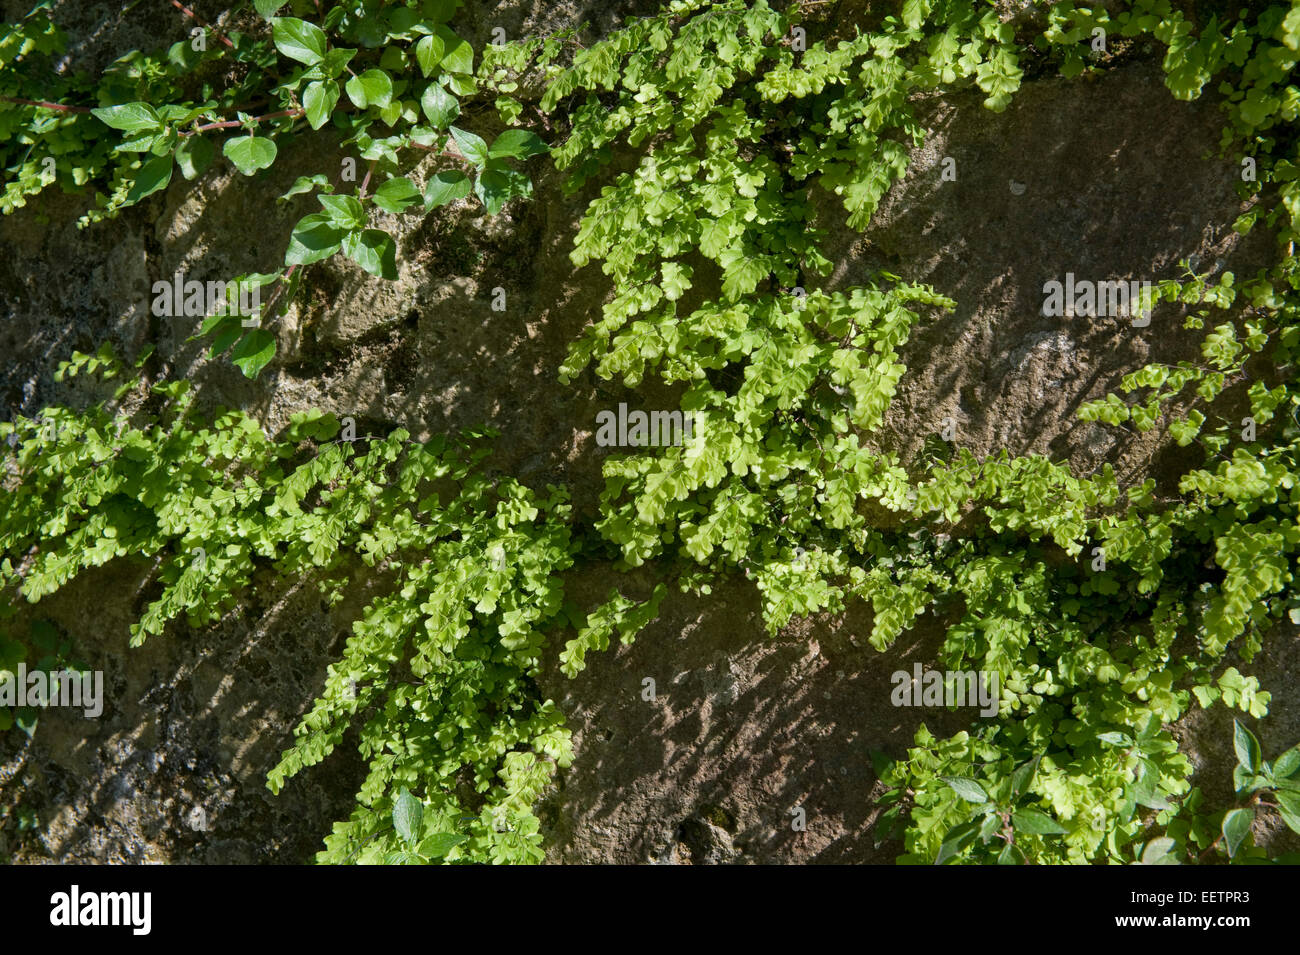 Maidenhair fern, Adiantum capillus-veneris, plants growing in the crevices of an old brick wall arch near Sorrento, Stock Photo